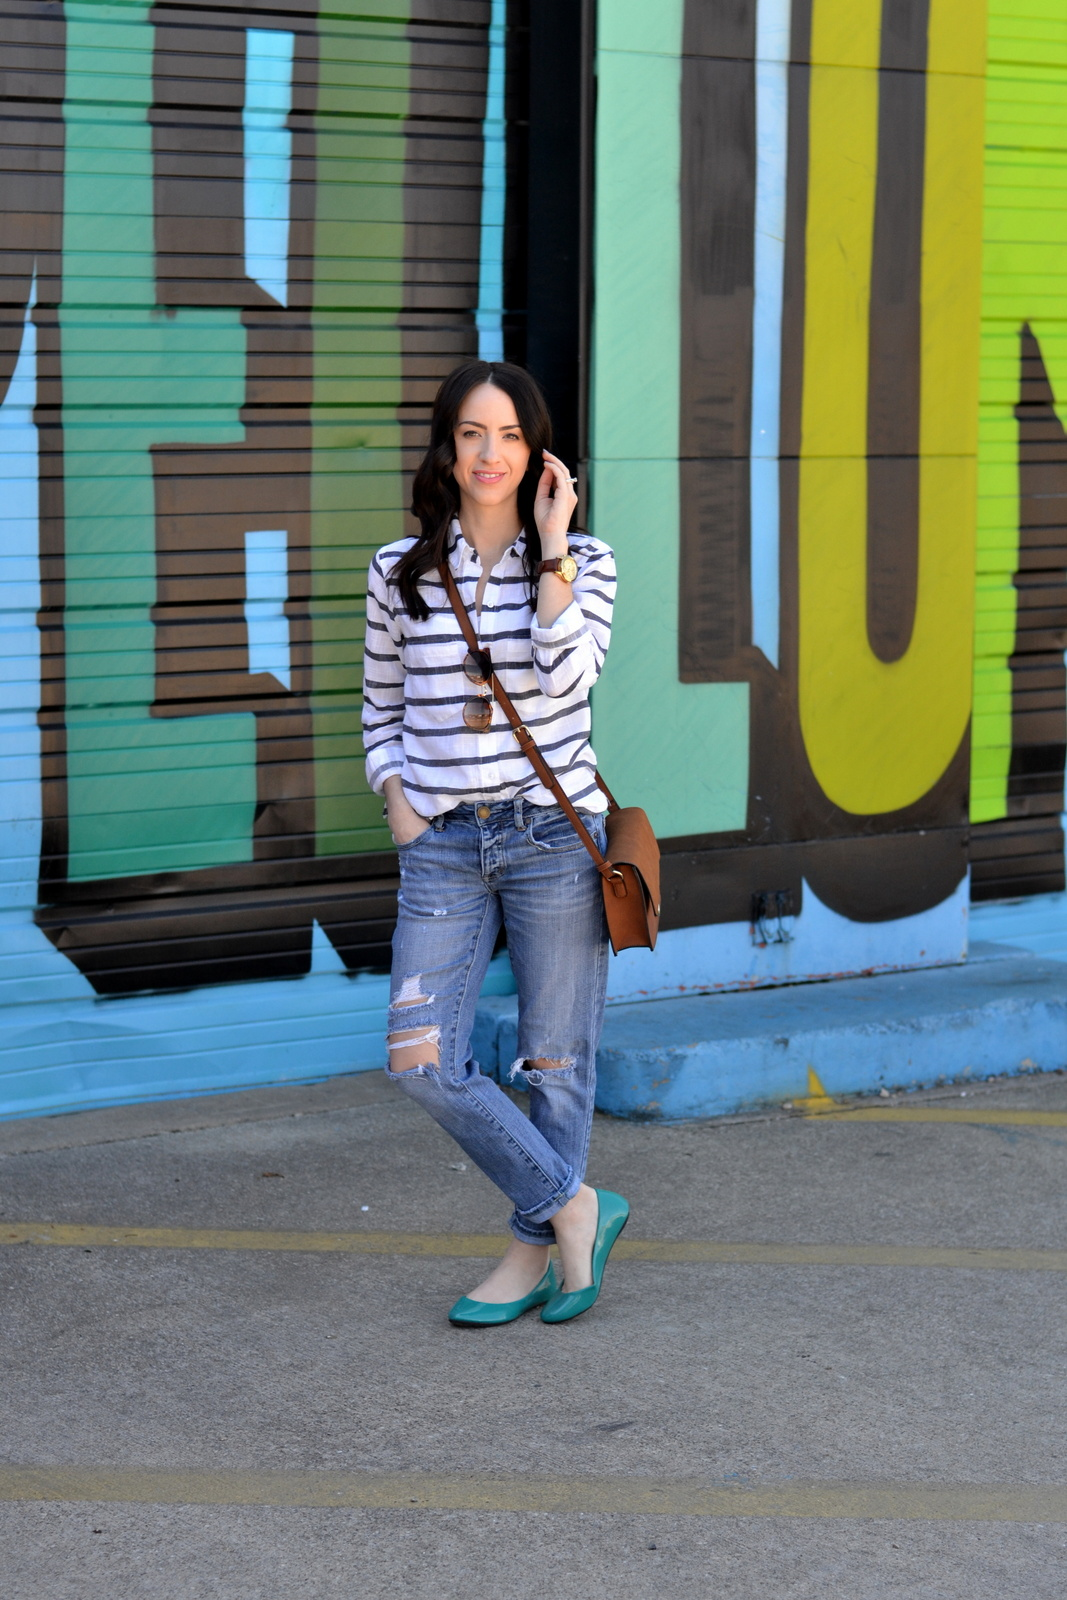 Casual Spring Outfit with colorful flats